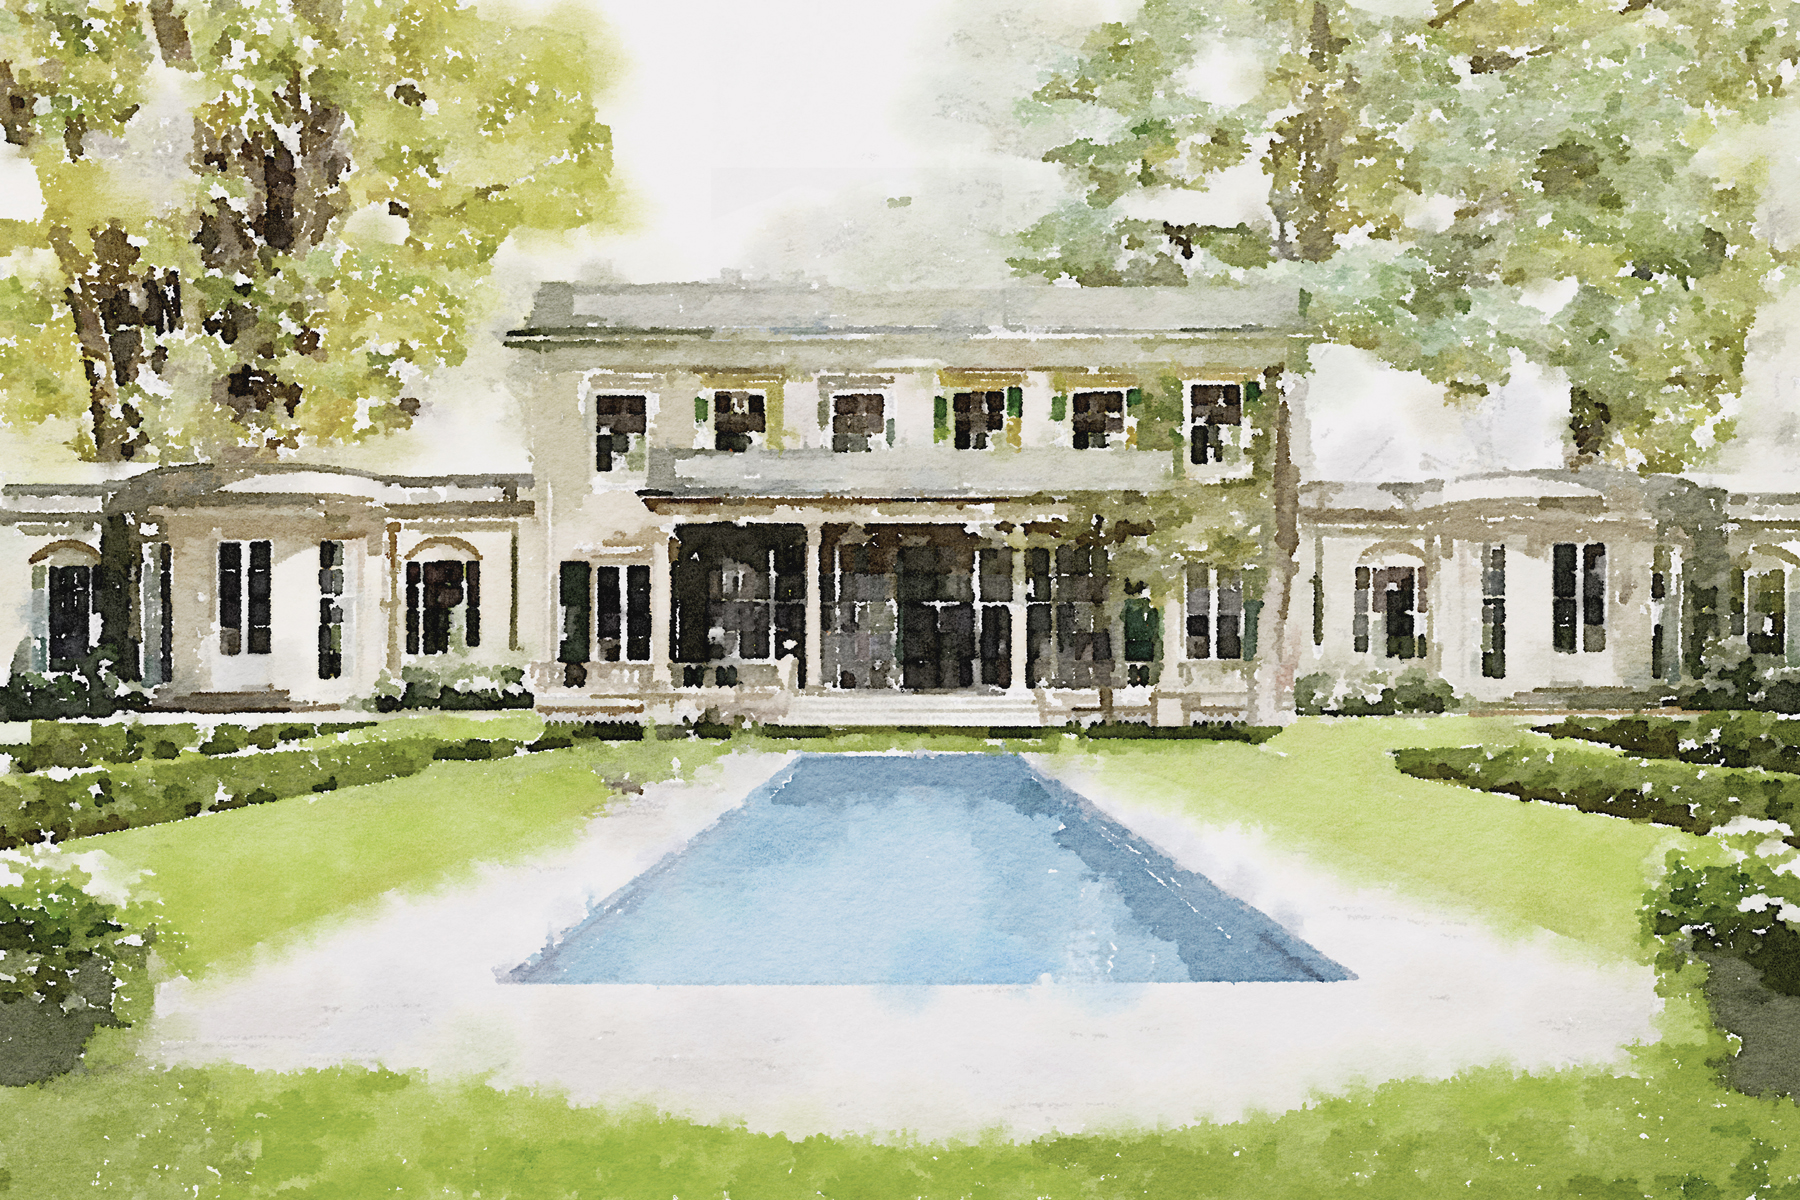 Single Family Home for Sale at Elegant English Regency Style New Construction Home In Buckhead 389 Blackland Road NW Atlanta, Georgia 30342 United States